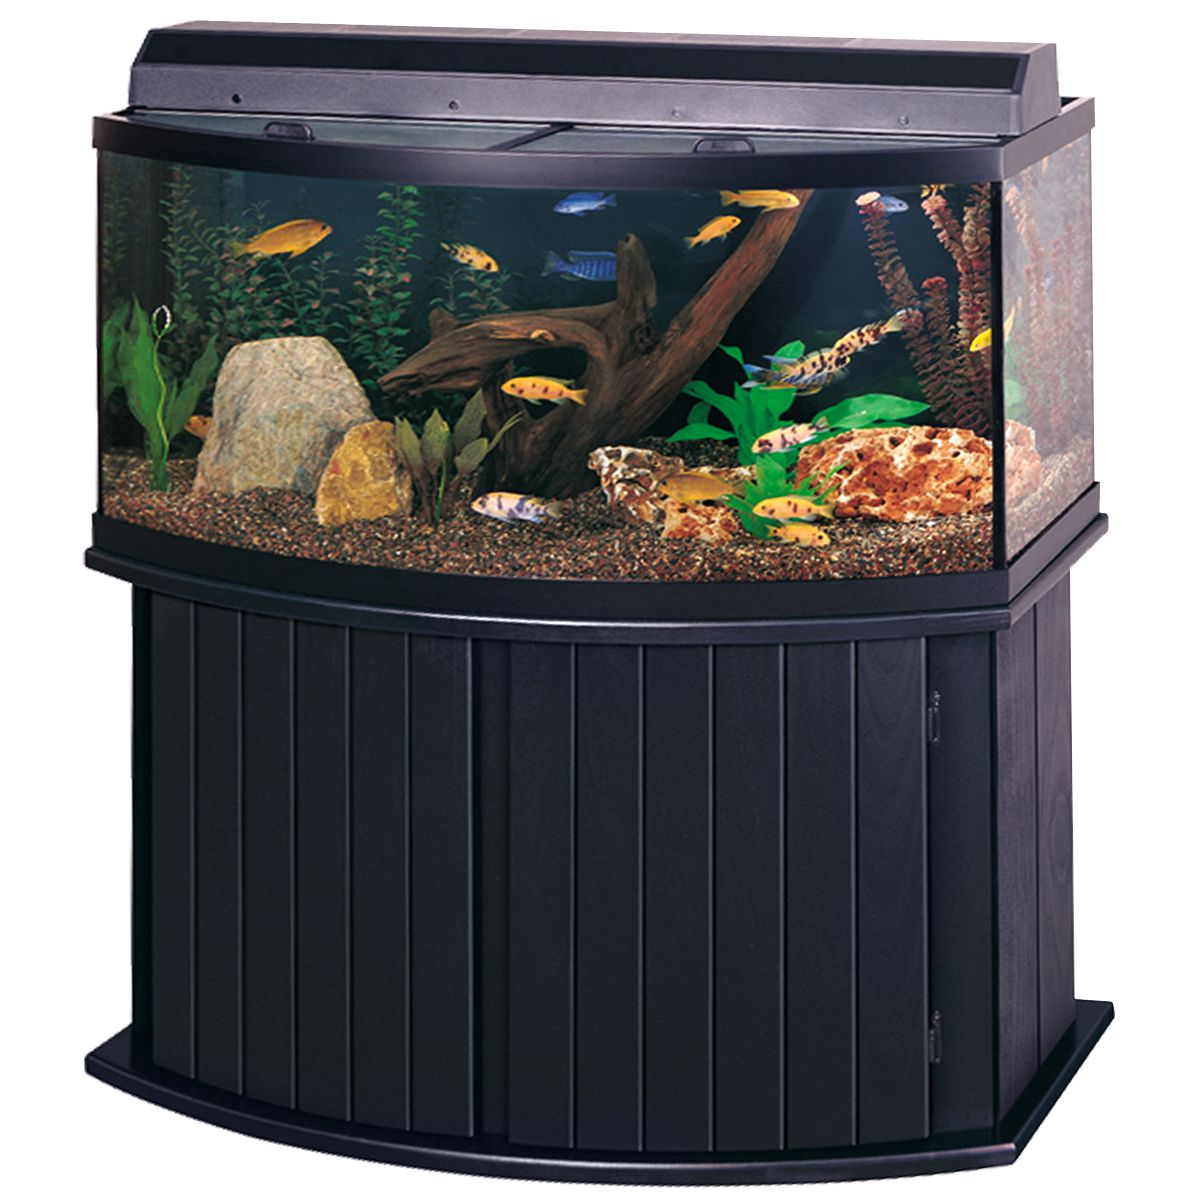 All glass aquarium fish tank - 72 Gallon Bow Front Aquarium 72 Gallon Bow Front Aquarium Kit Black A1147 All Glass Aquariumaquarium Standaquarium Designaquarium Ideasfish Tank